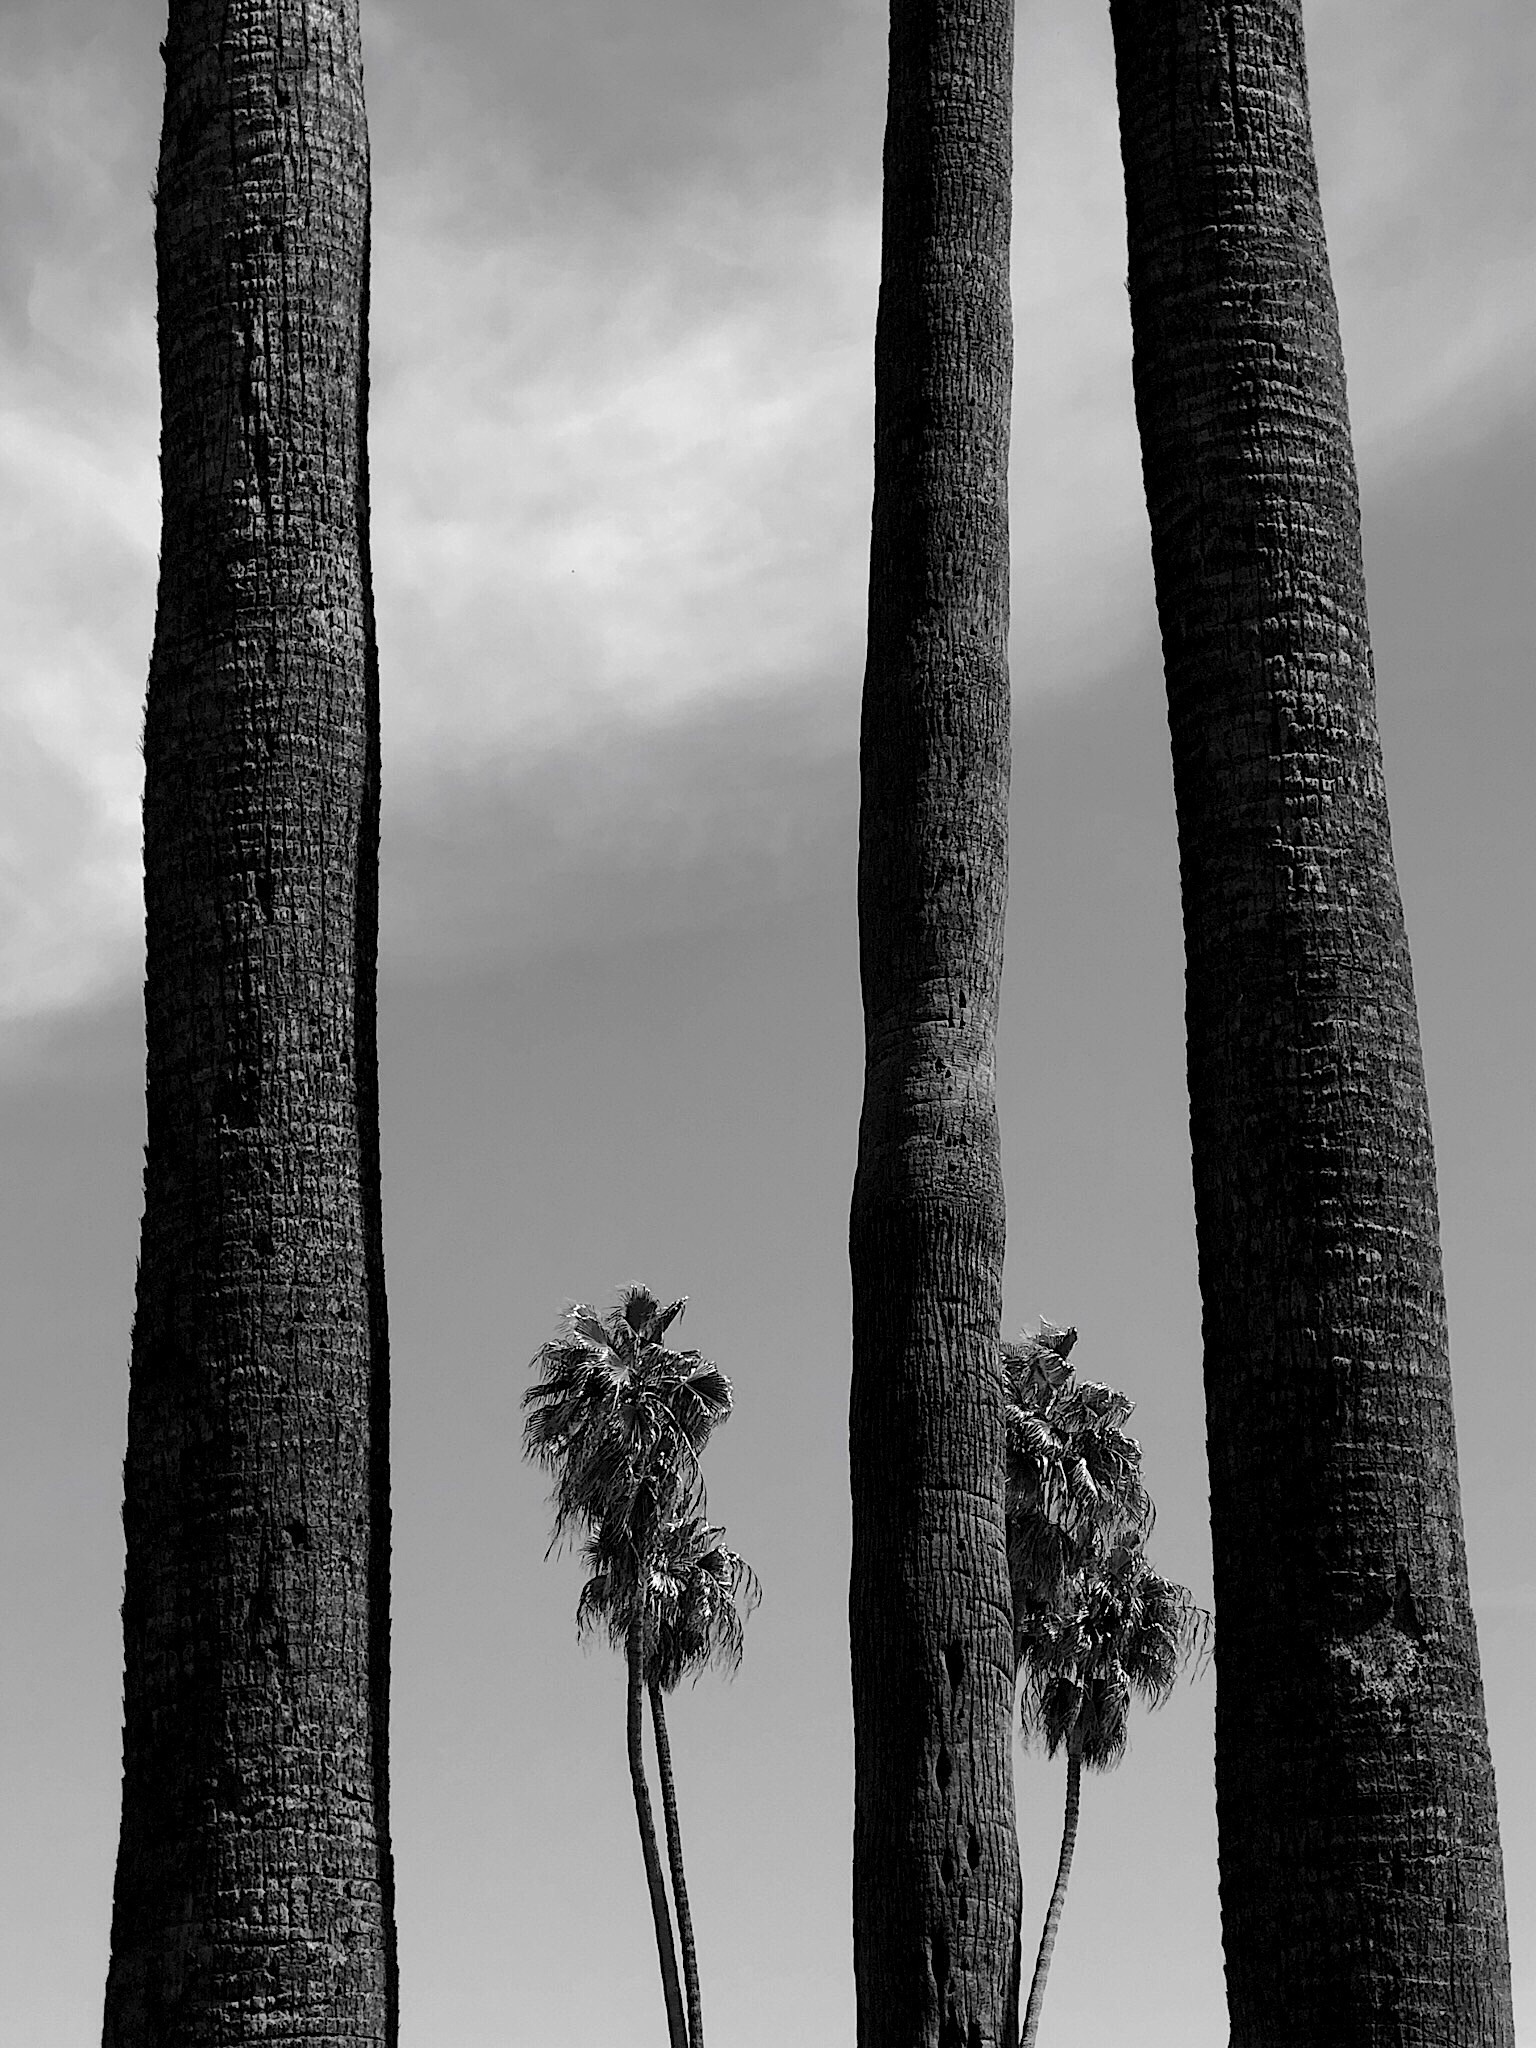 PALM TREE SERIES, #7 (2019)